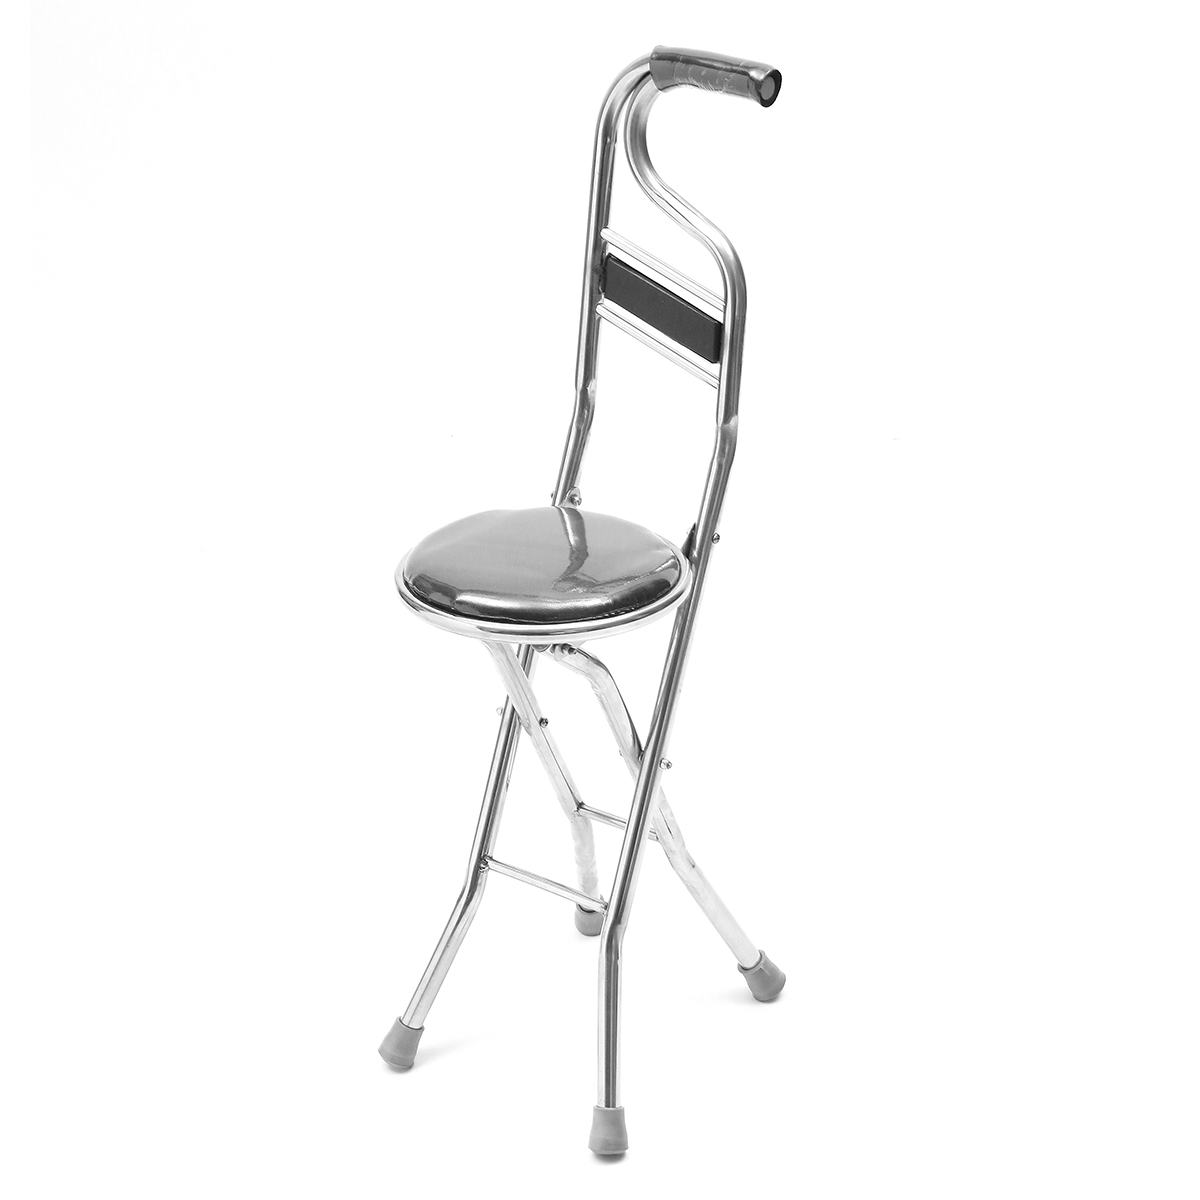 2 In 1 Adjustable Stainless Walking Cane Stick Elderly Care Portable  Folding Walking Stick Travel Cane With Chair Seat Stool